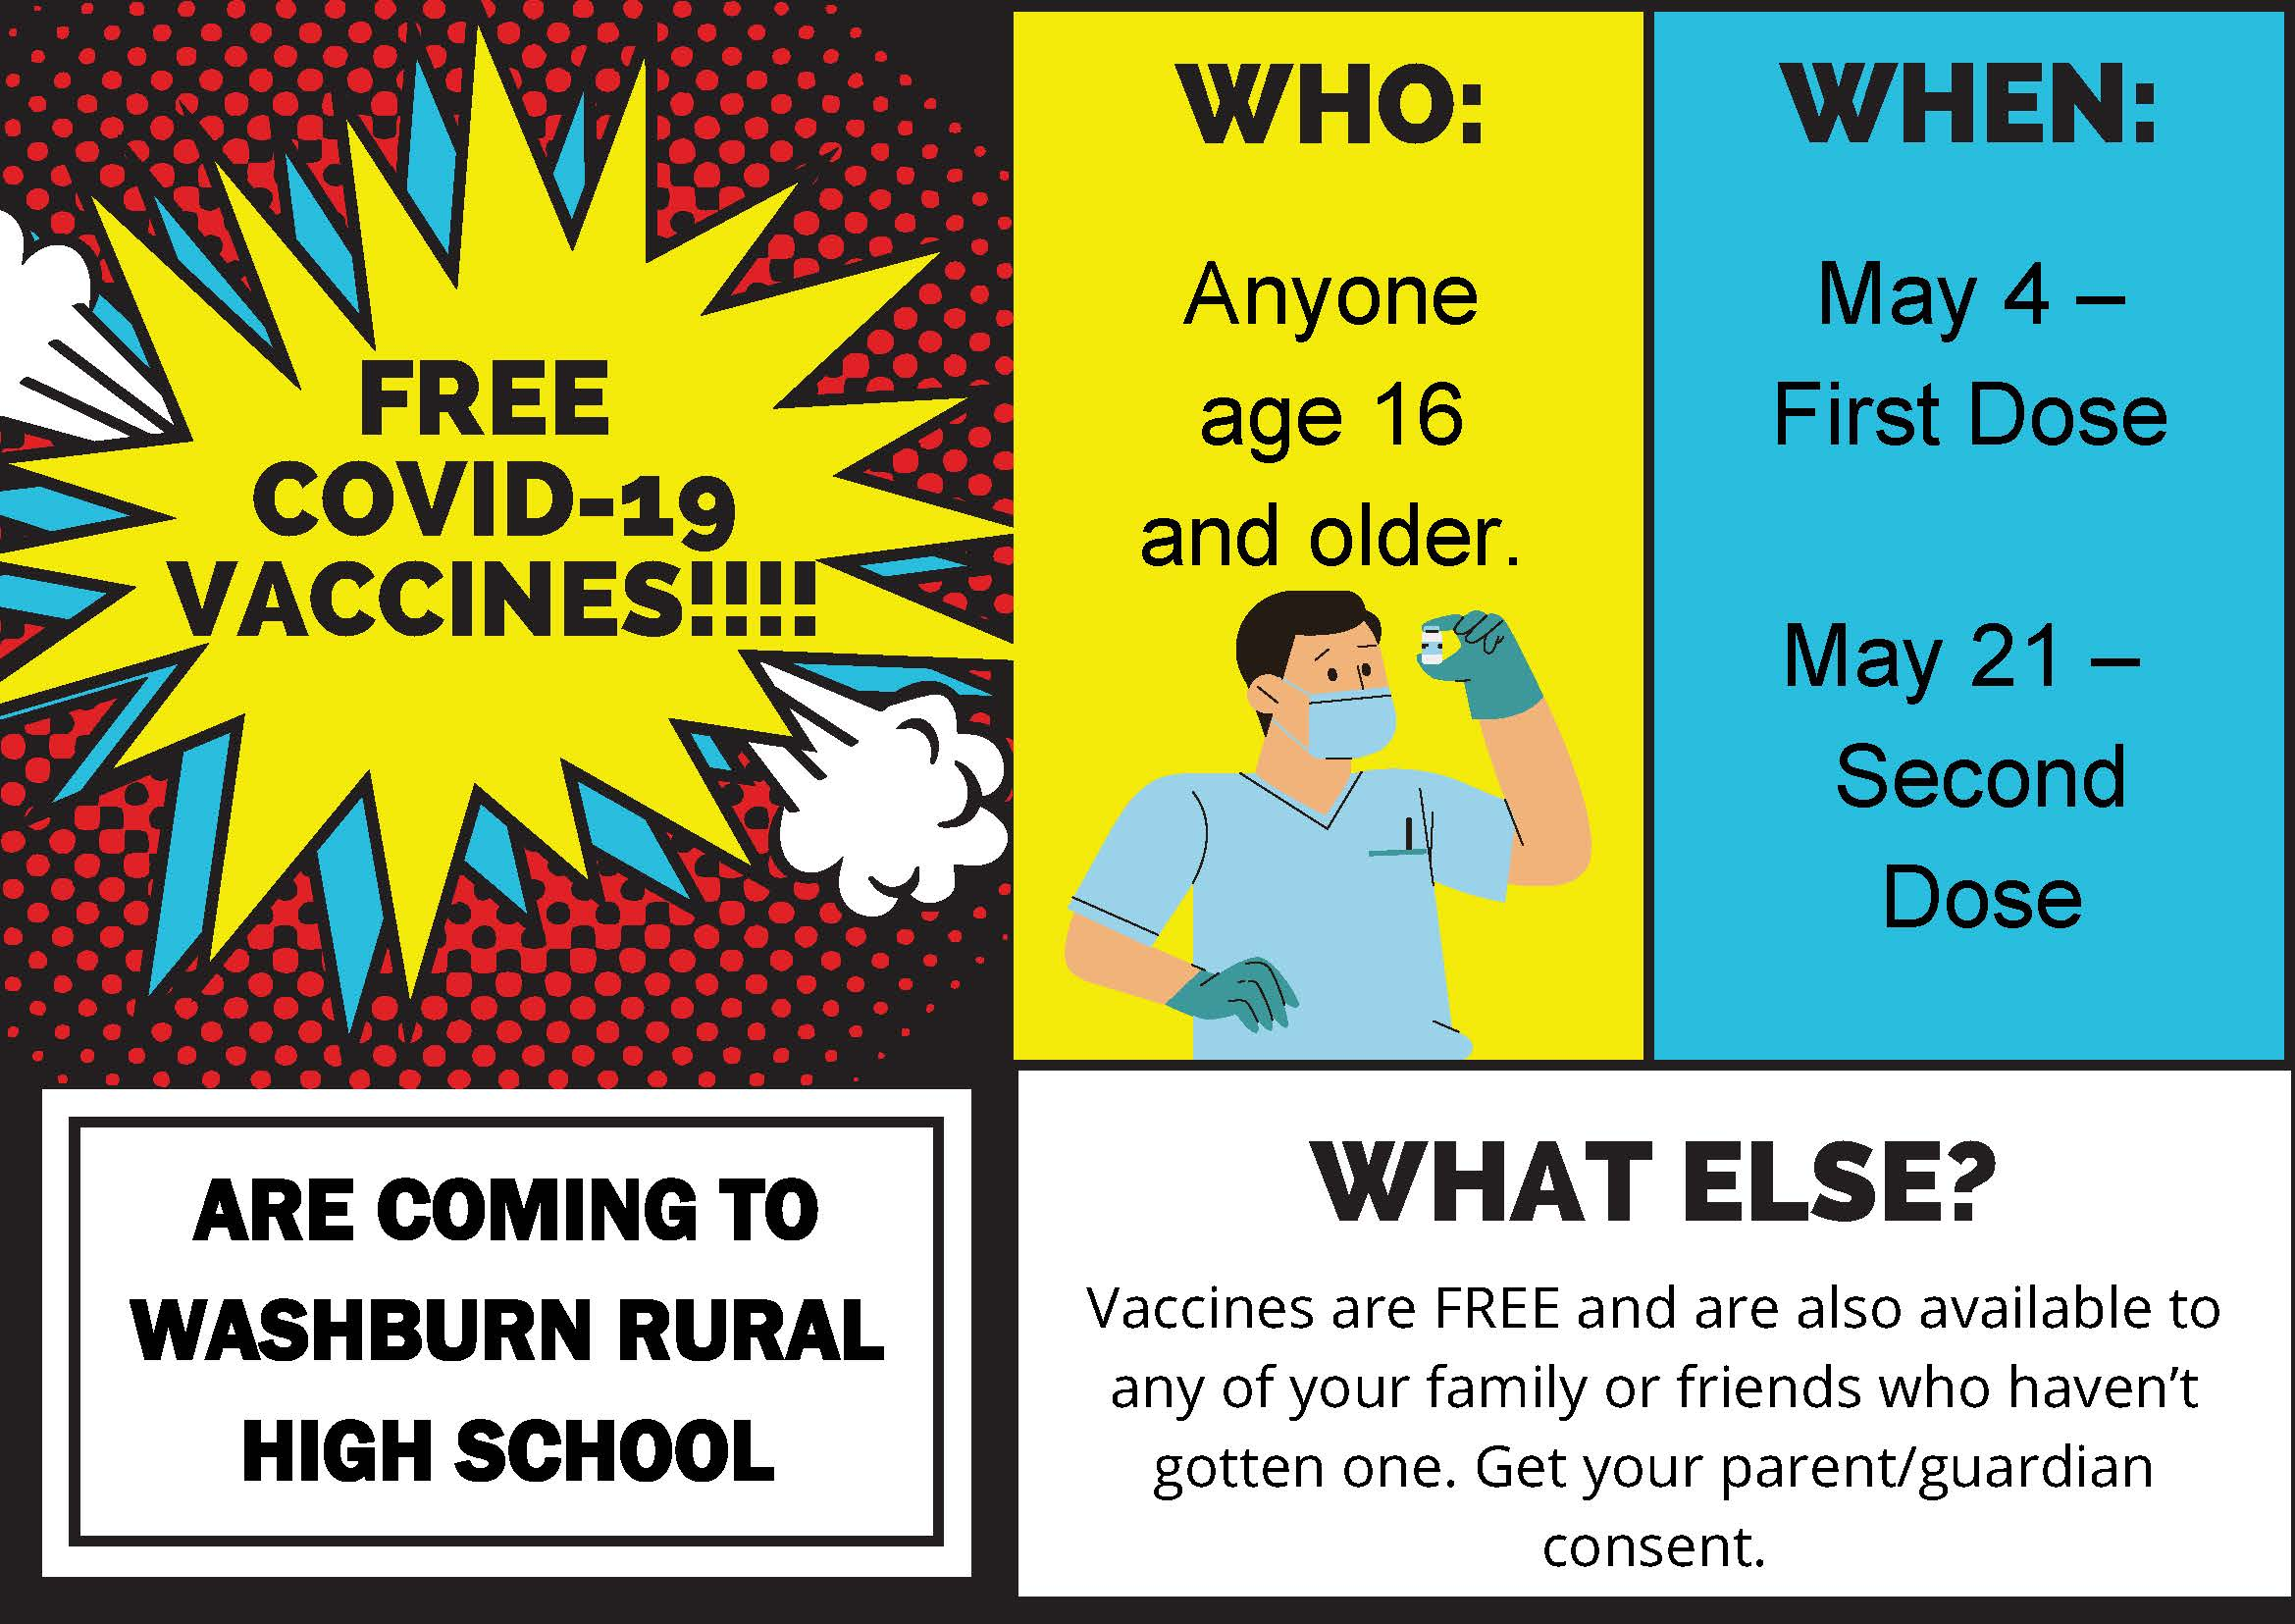 Free COVID-19 Vaccines are coming to Washburn Rural High School! Who: Anyone age 16 and older. When: First dose is May 4 and second dose is May 21. Vaccines are free and are also available to any of your family or friends who haven't gotten one. Get your parent/guardian consent.